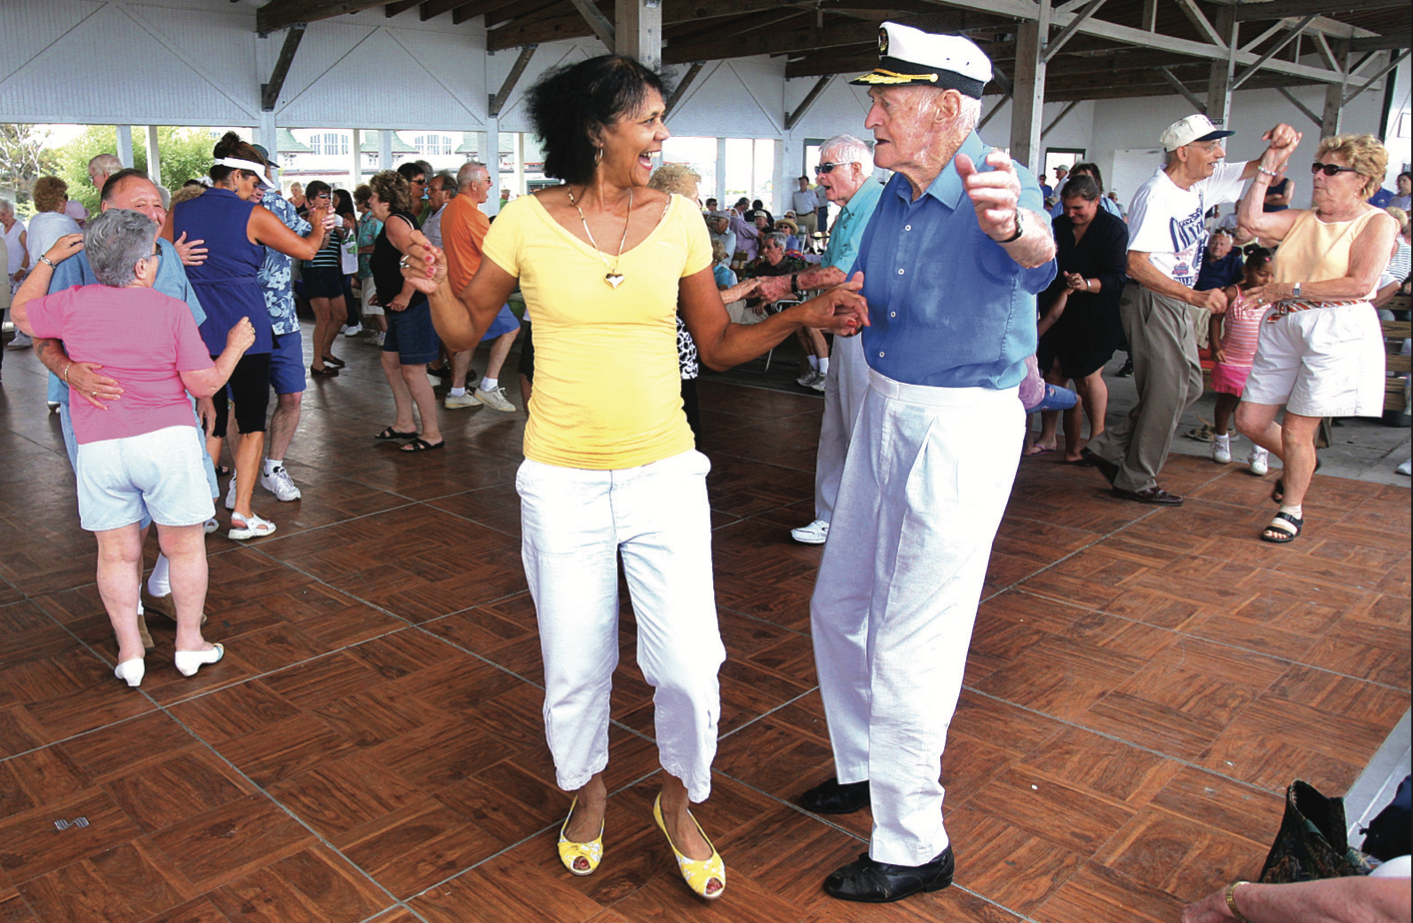 SWINGING THE SUMMER AWAY. This photo, taken more than a decade ago, expresses the joy that live music brings to those who travel to the Bernie King Pavilion to enjoy familiar melodies by the sea during the summer. [Tom Herde Hull Times file photo, 2007]